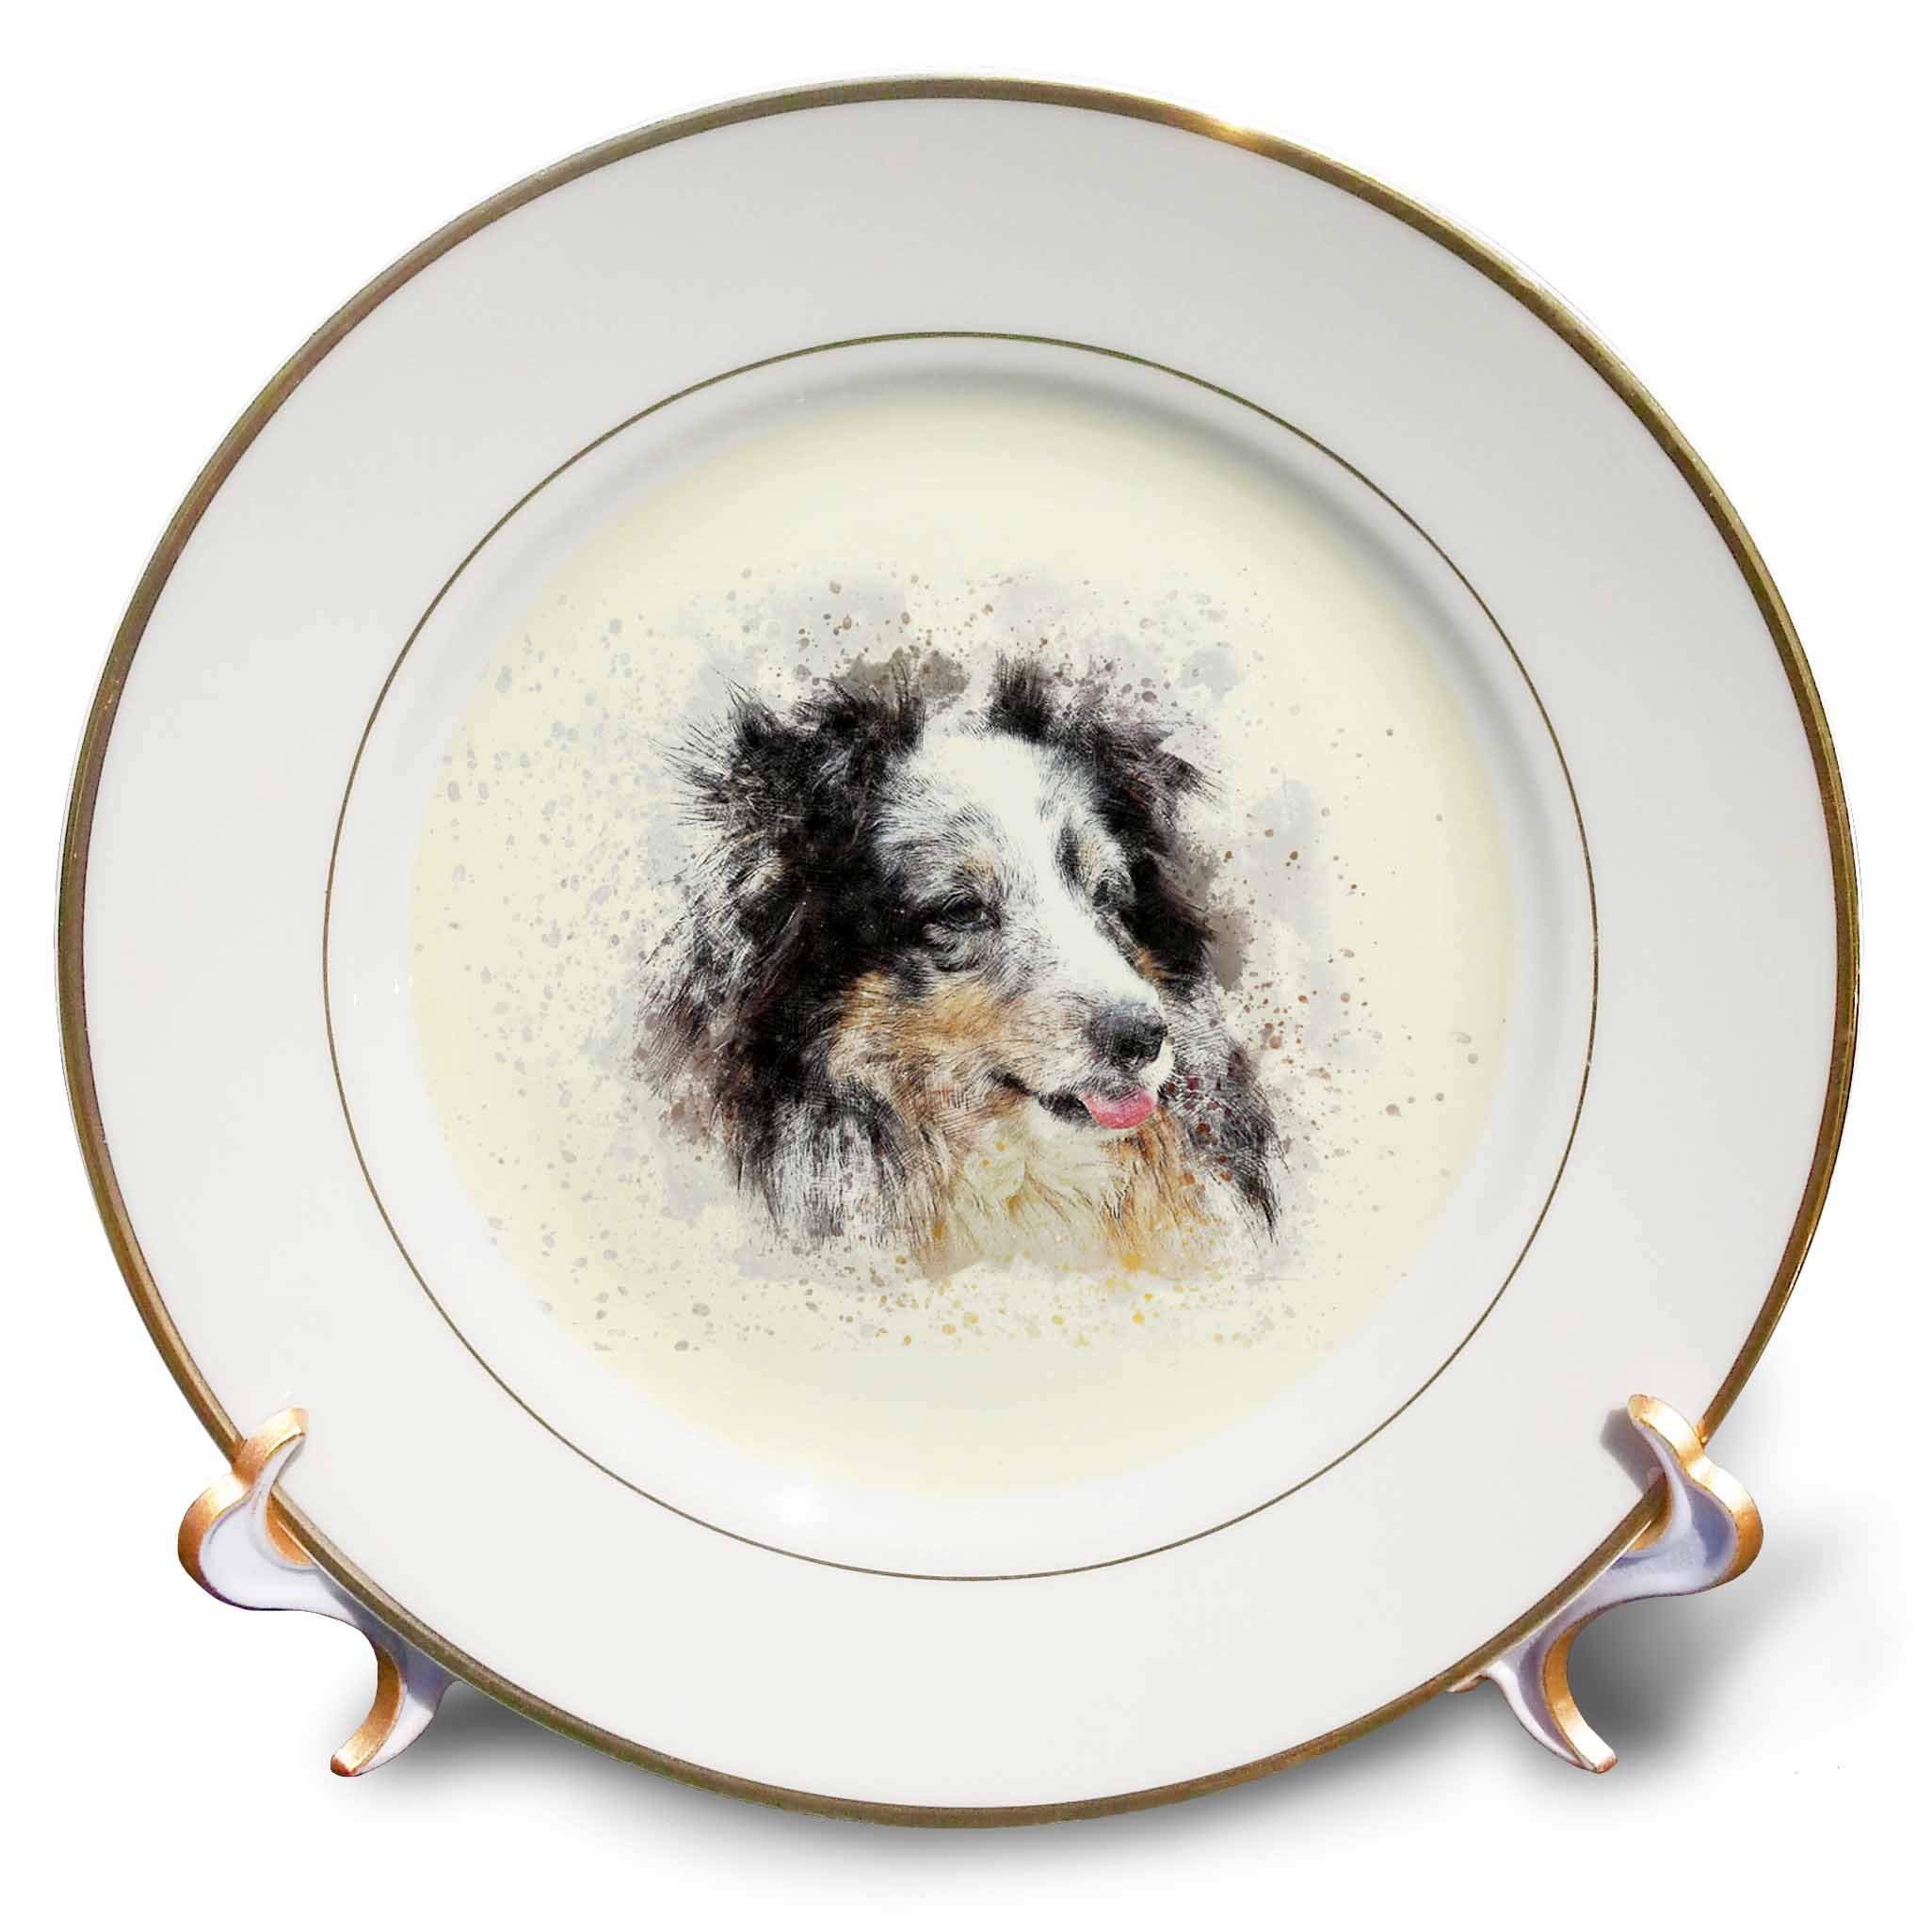 3dRose cp_272907_1 Trendy Cute Animal Dog Watercolor Illustration Dinner Plates, 8'', Clear